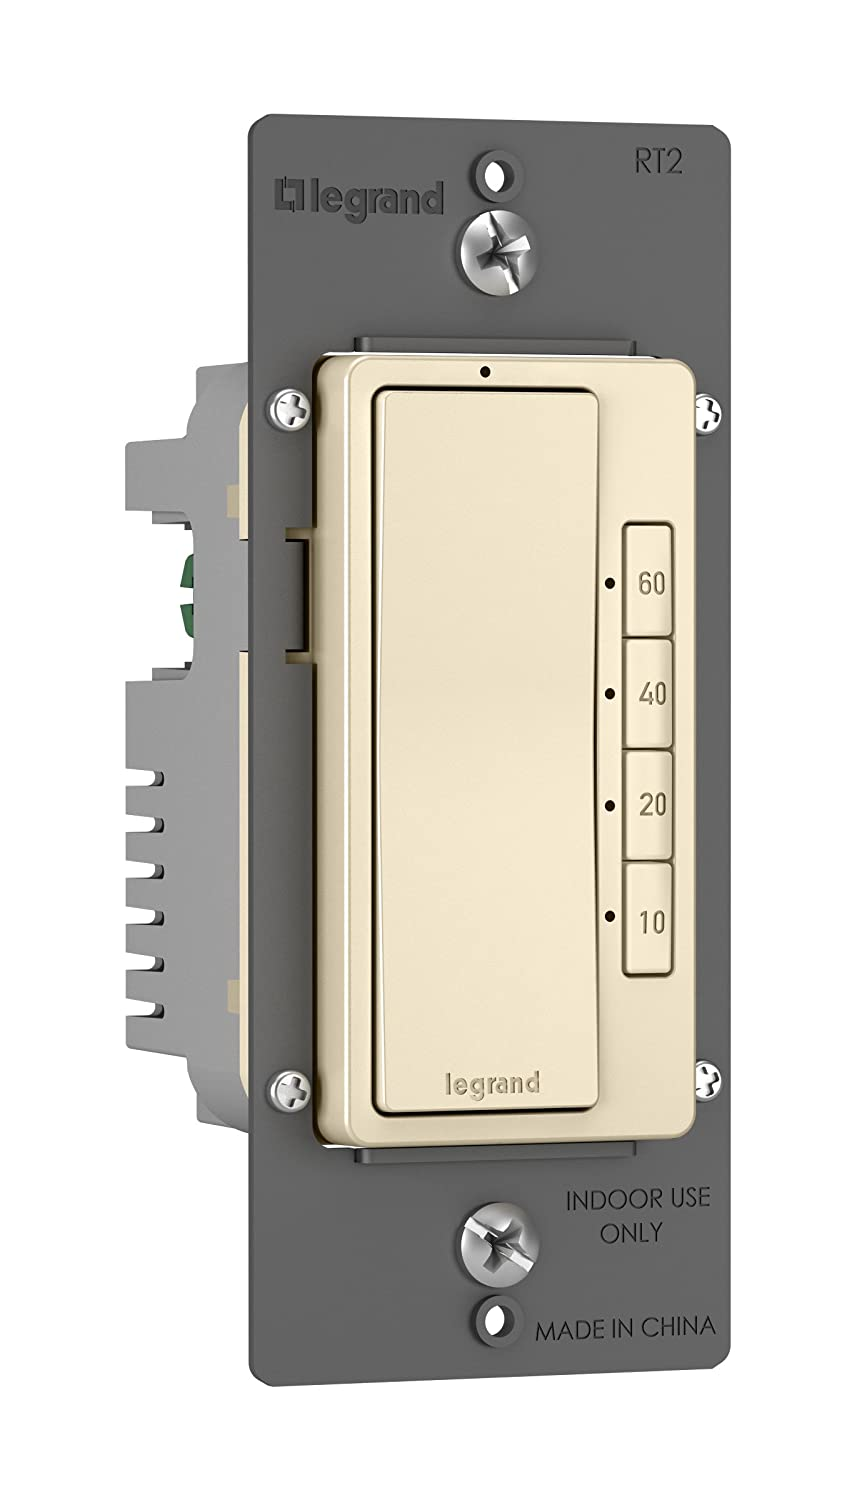 Legrand Pass Seymour Rt2wccv4 Radiant Digital Timer 4 Button 3 Way Switch Fluorescent Paddle